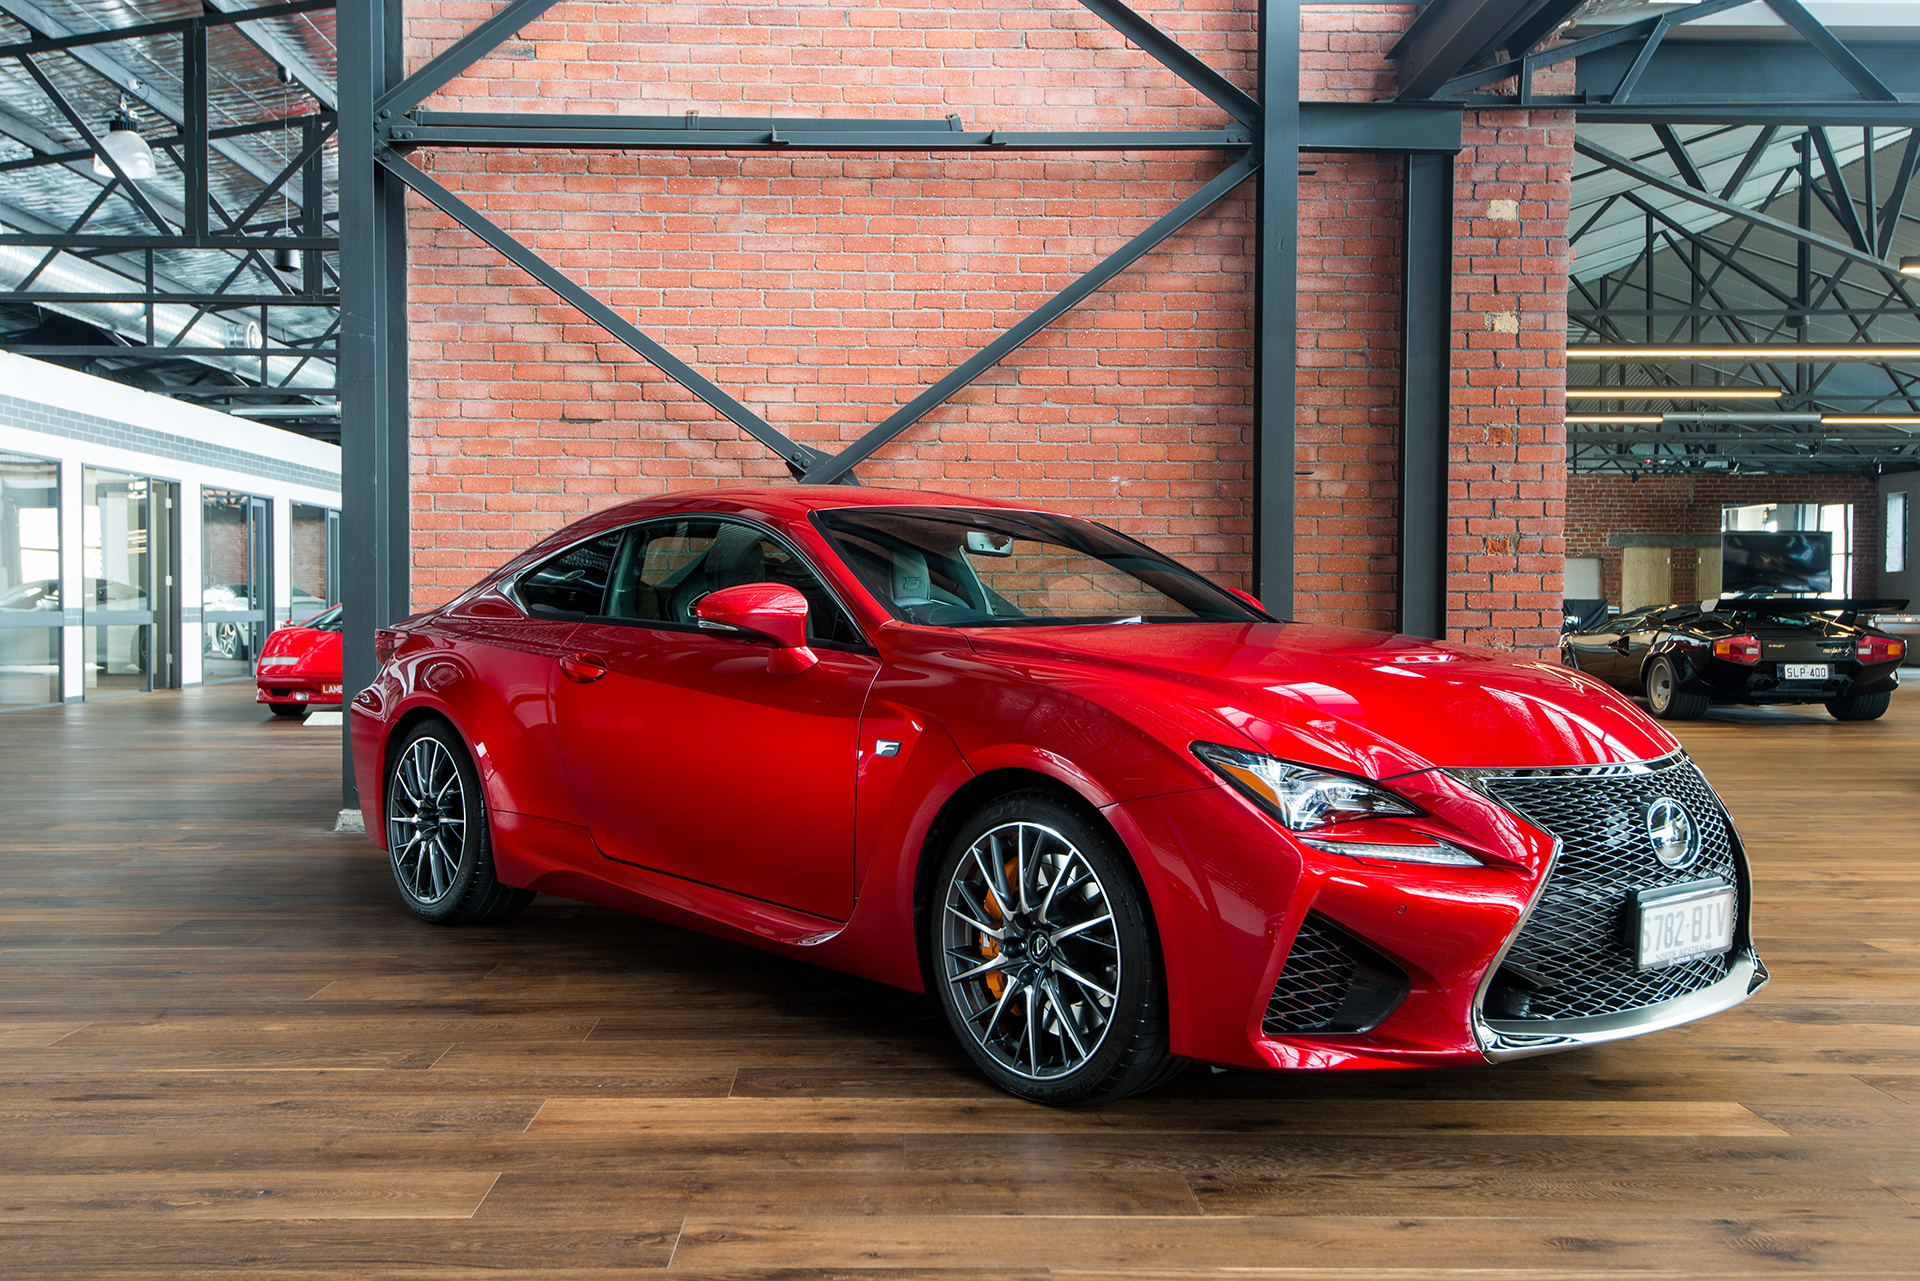 2016 lexus rcf coupe richmonds classic and prestige cars storage and sales adelaide. Black Bedroom Furniture Sets. Home Design Ideas